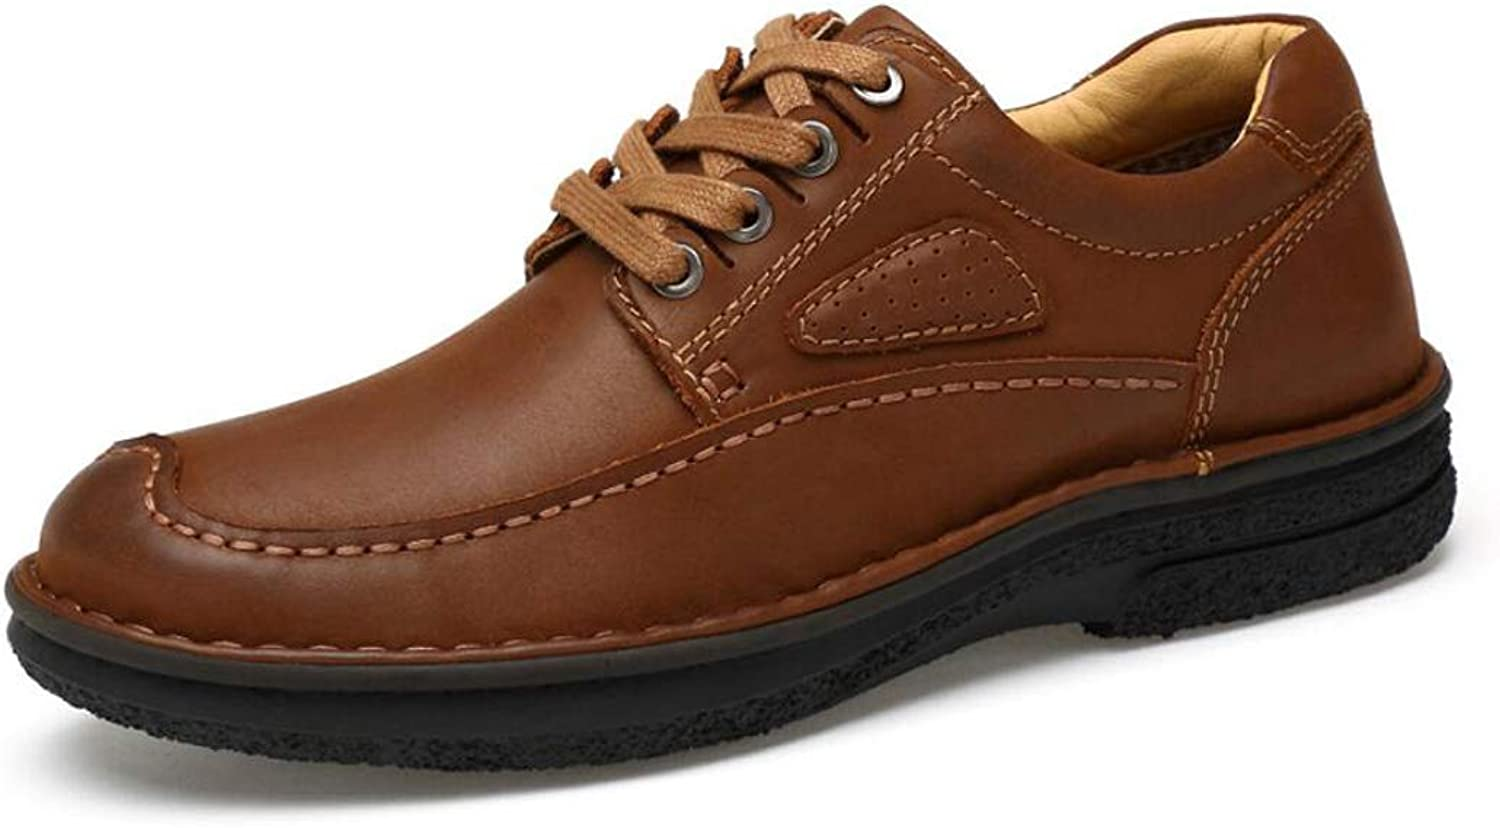 Business shoes Men's Casual shoes Hand-Stitched Lace-up Driving shoes Large Size Single shoes 38-45